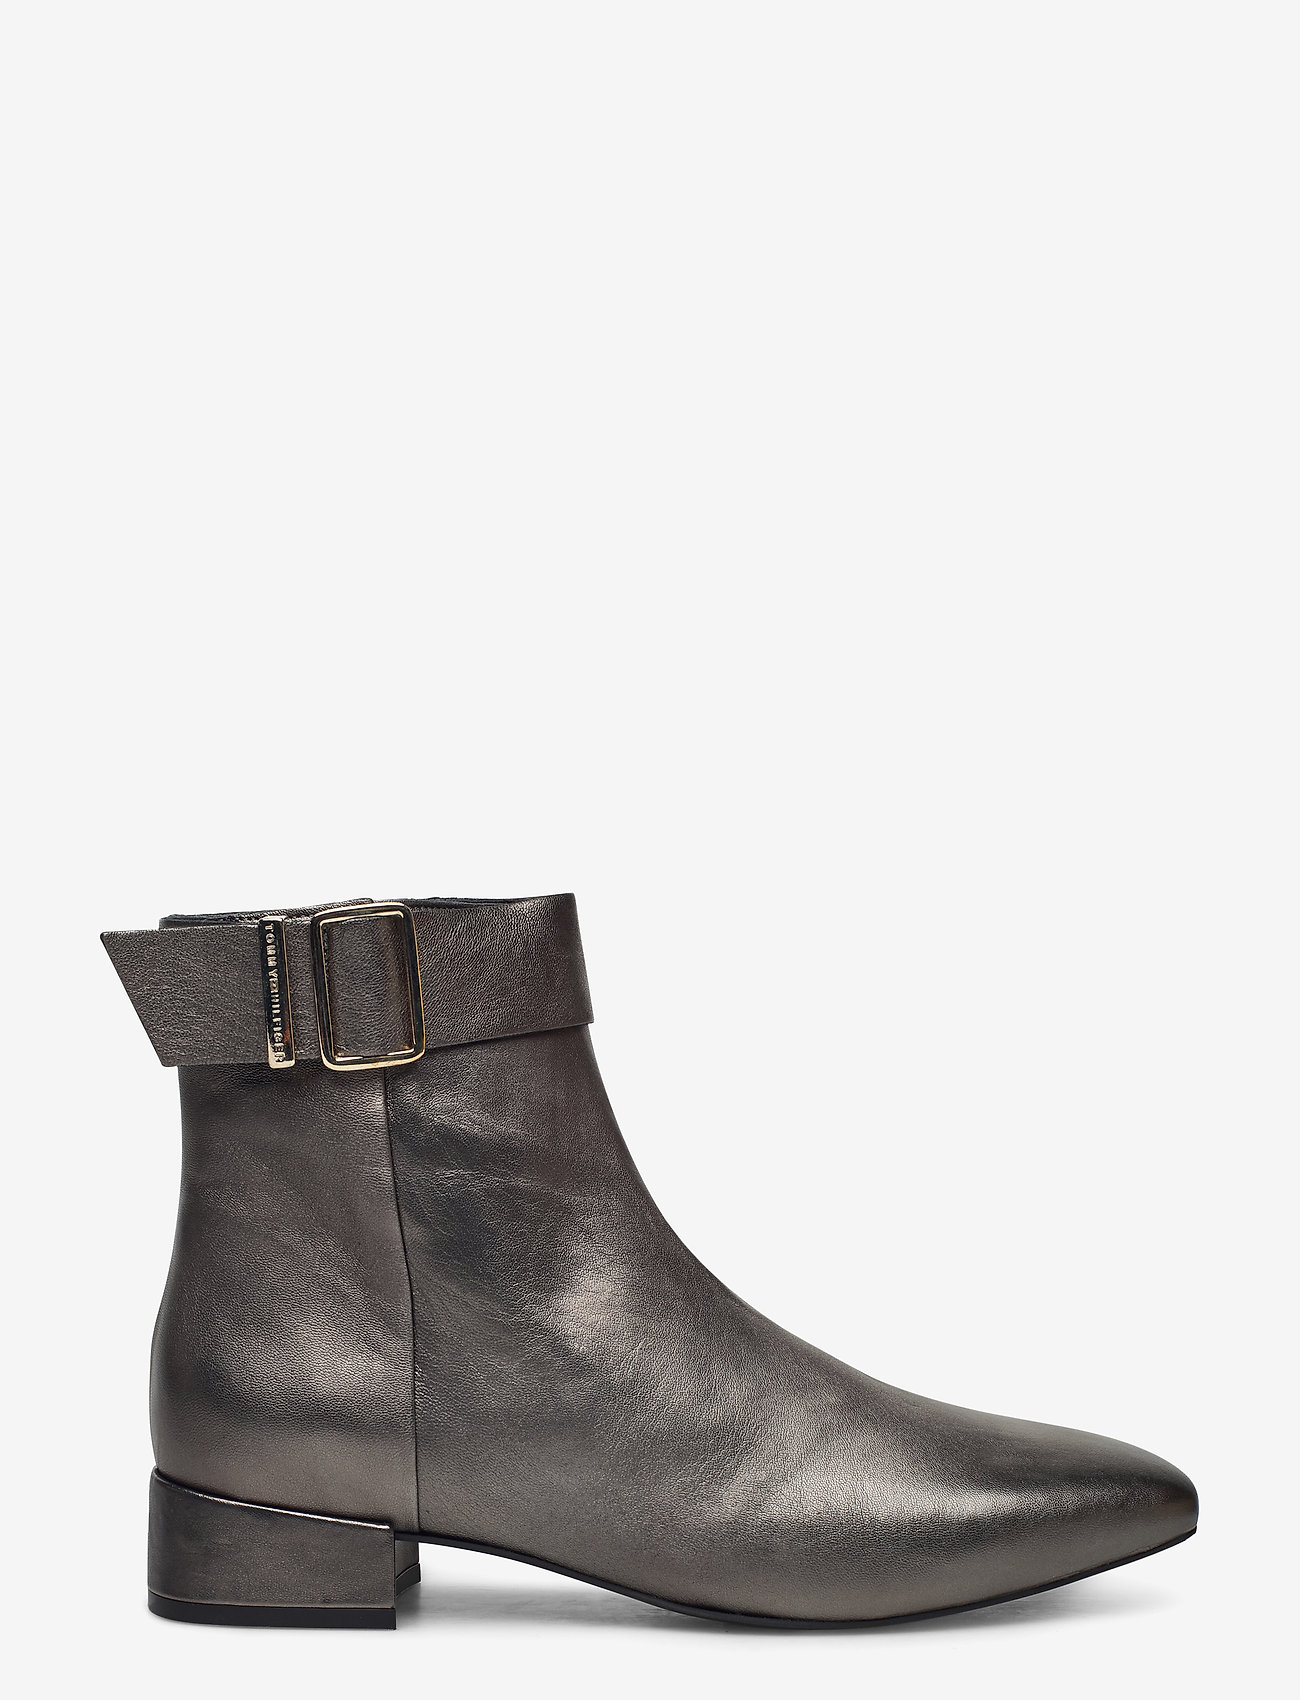 Tommy Hilfiger - METALLIC SQUARE TOE MID BOOT - heeled ankle boots - dark silver - 1